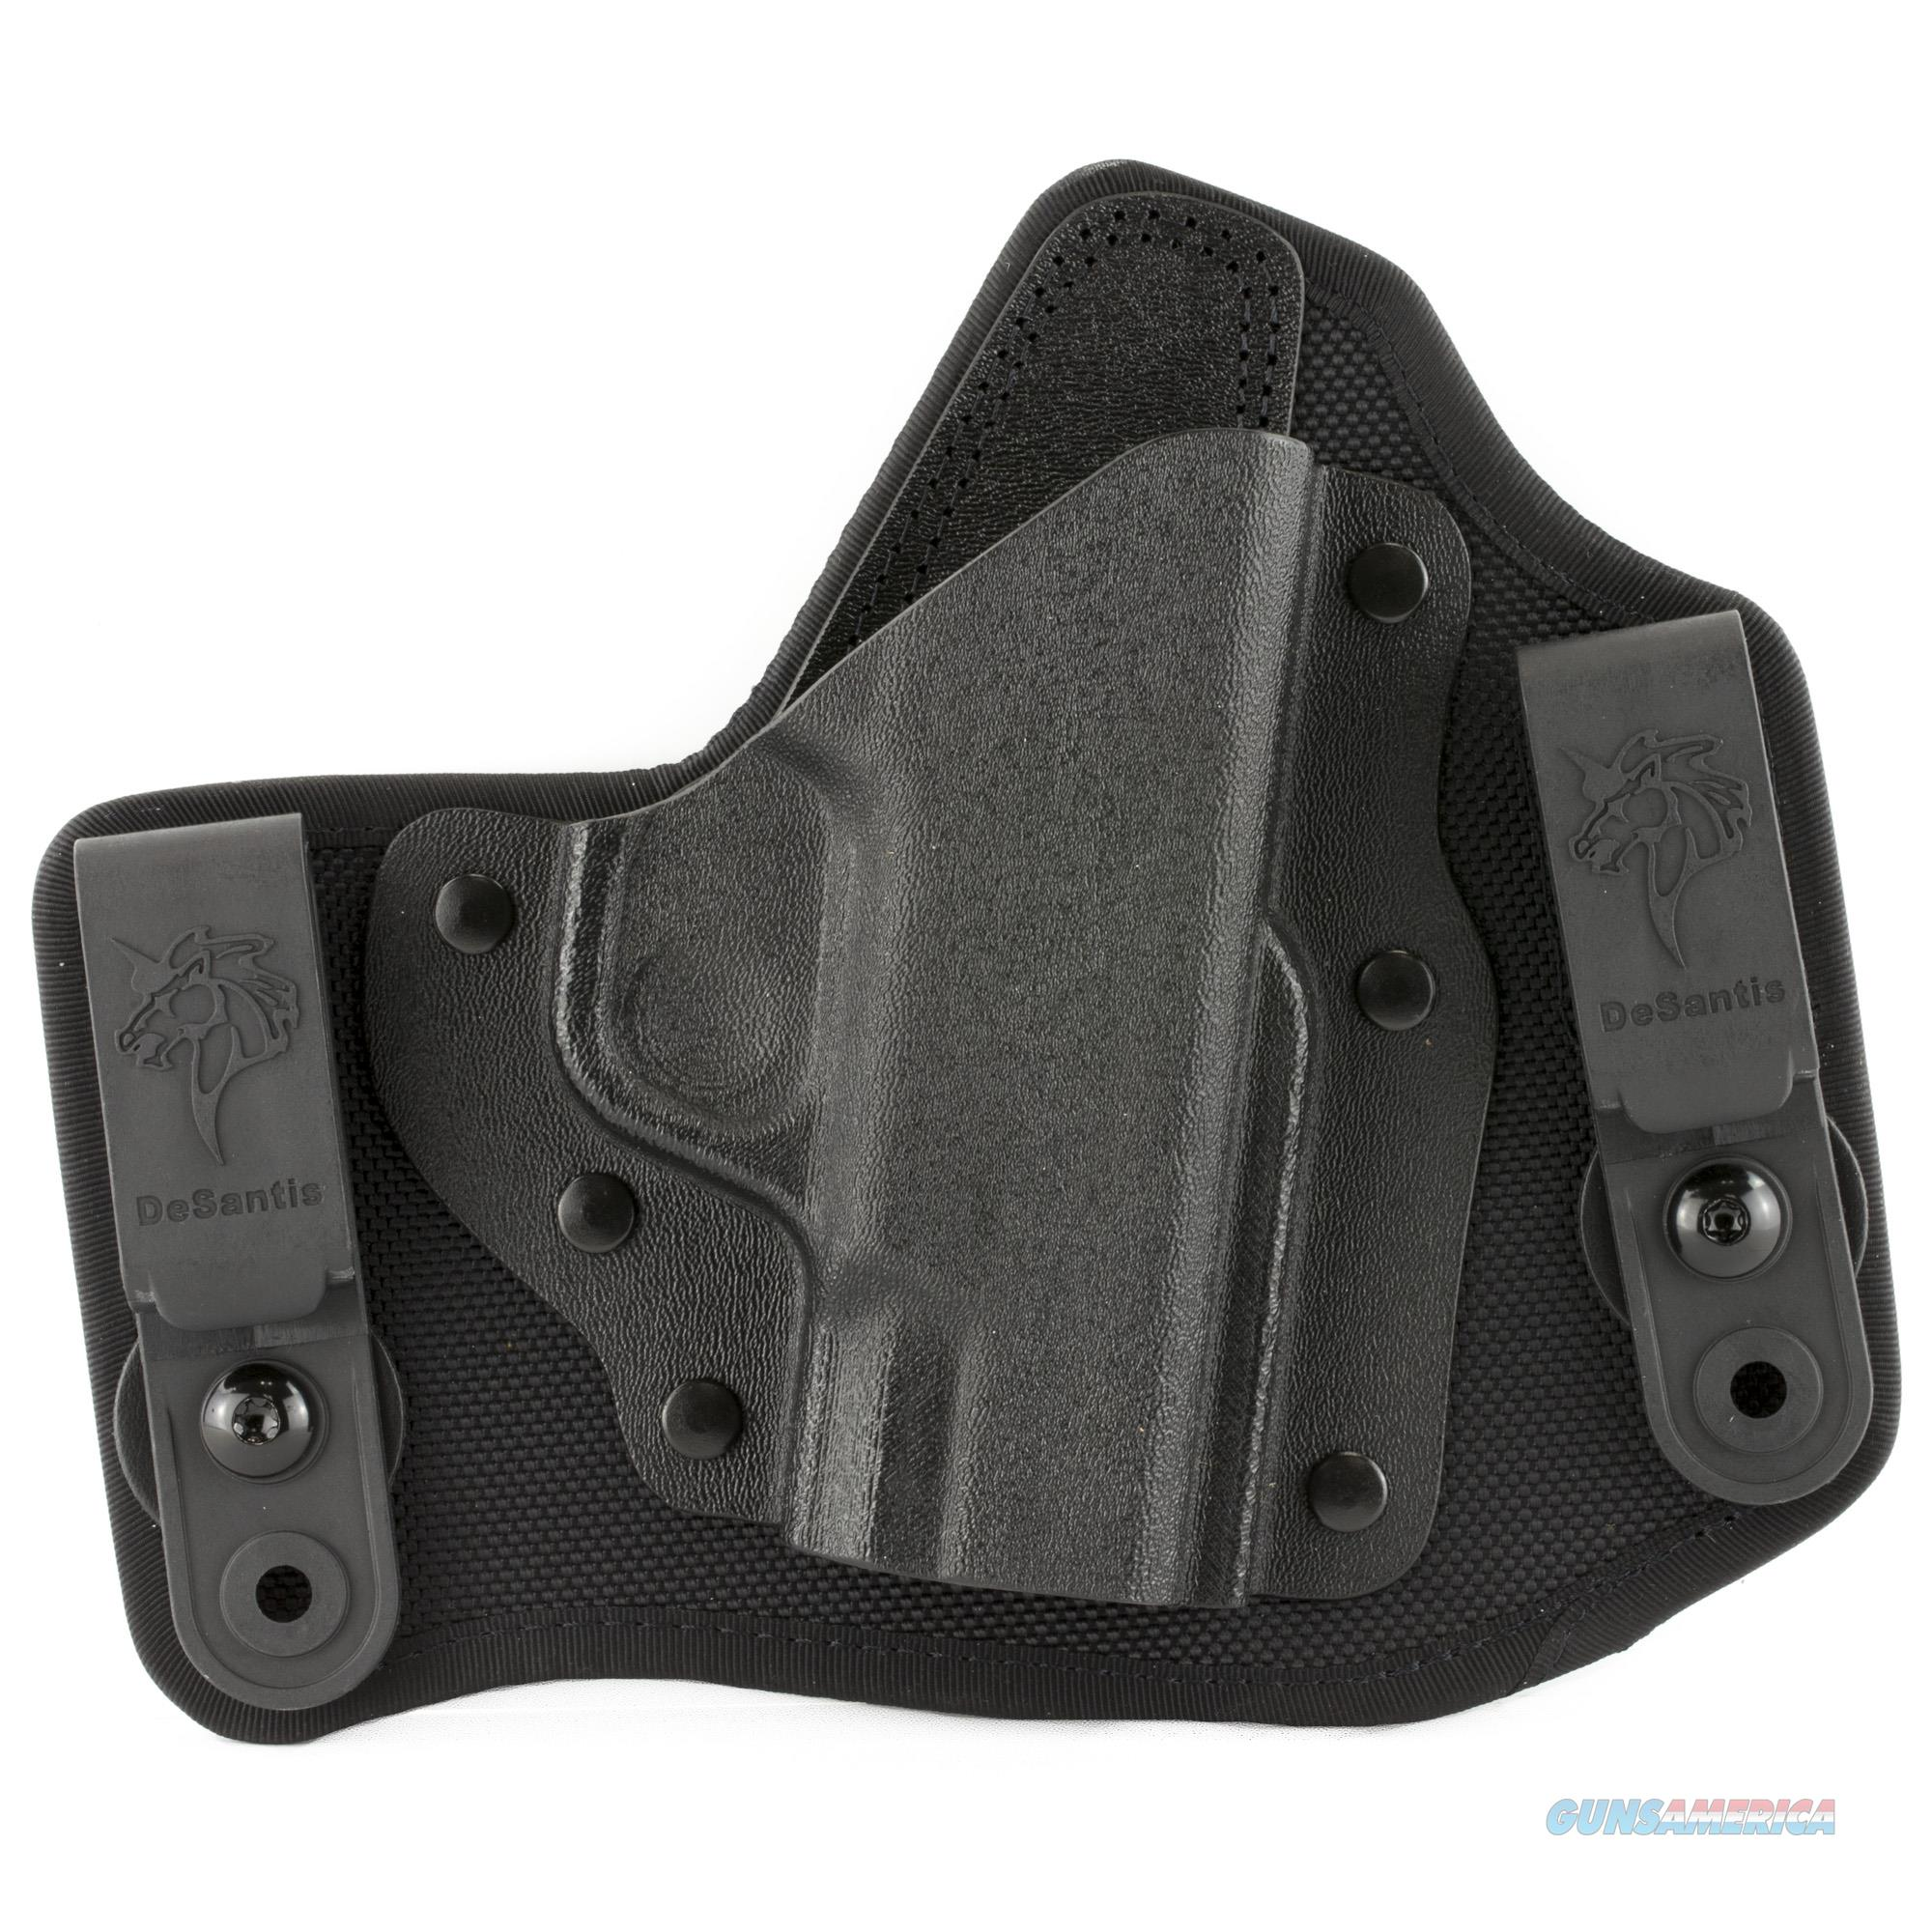 DeSantis M65KAX7Z0 Invader Inside the Waistband (IWB) Holster – Smith & Wesson M&P Shield 9/40  Non-Guns > Holsters and Gunleather > Concealed Carry